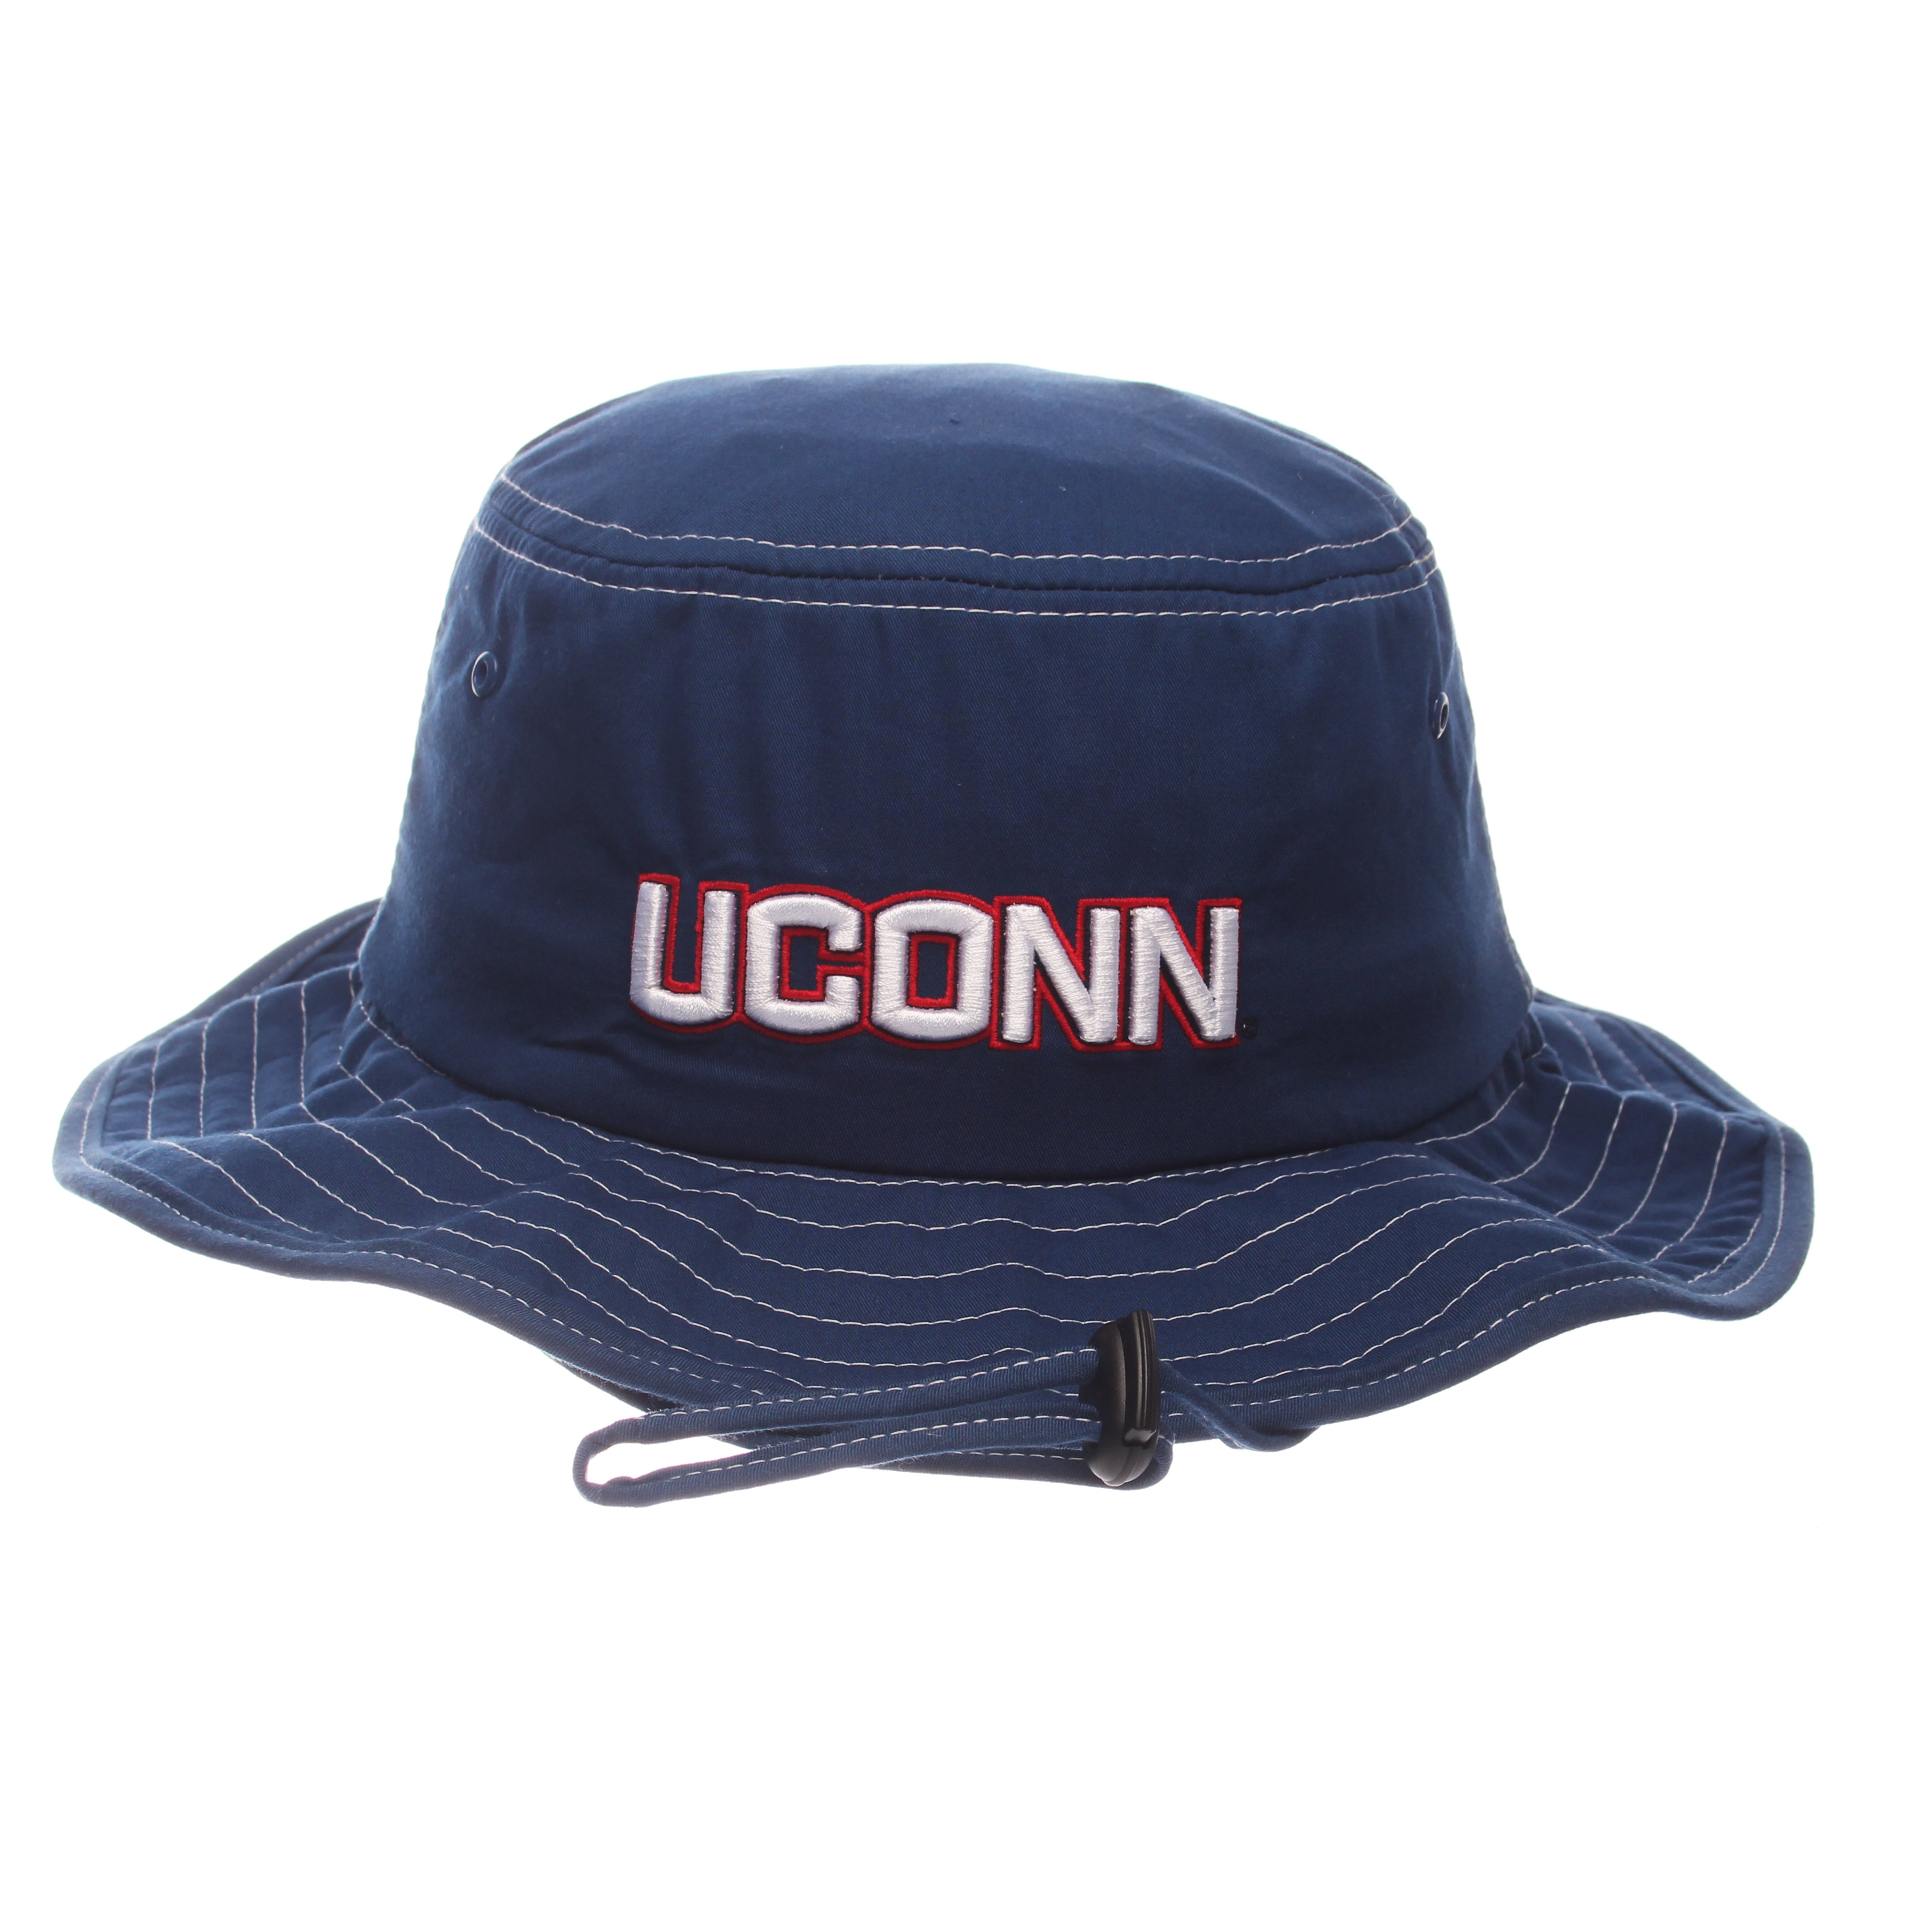 Connecticut (UCONN) Bucket – Zephyr Headwear 5925734f1b8